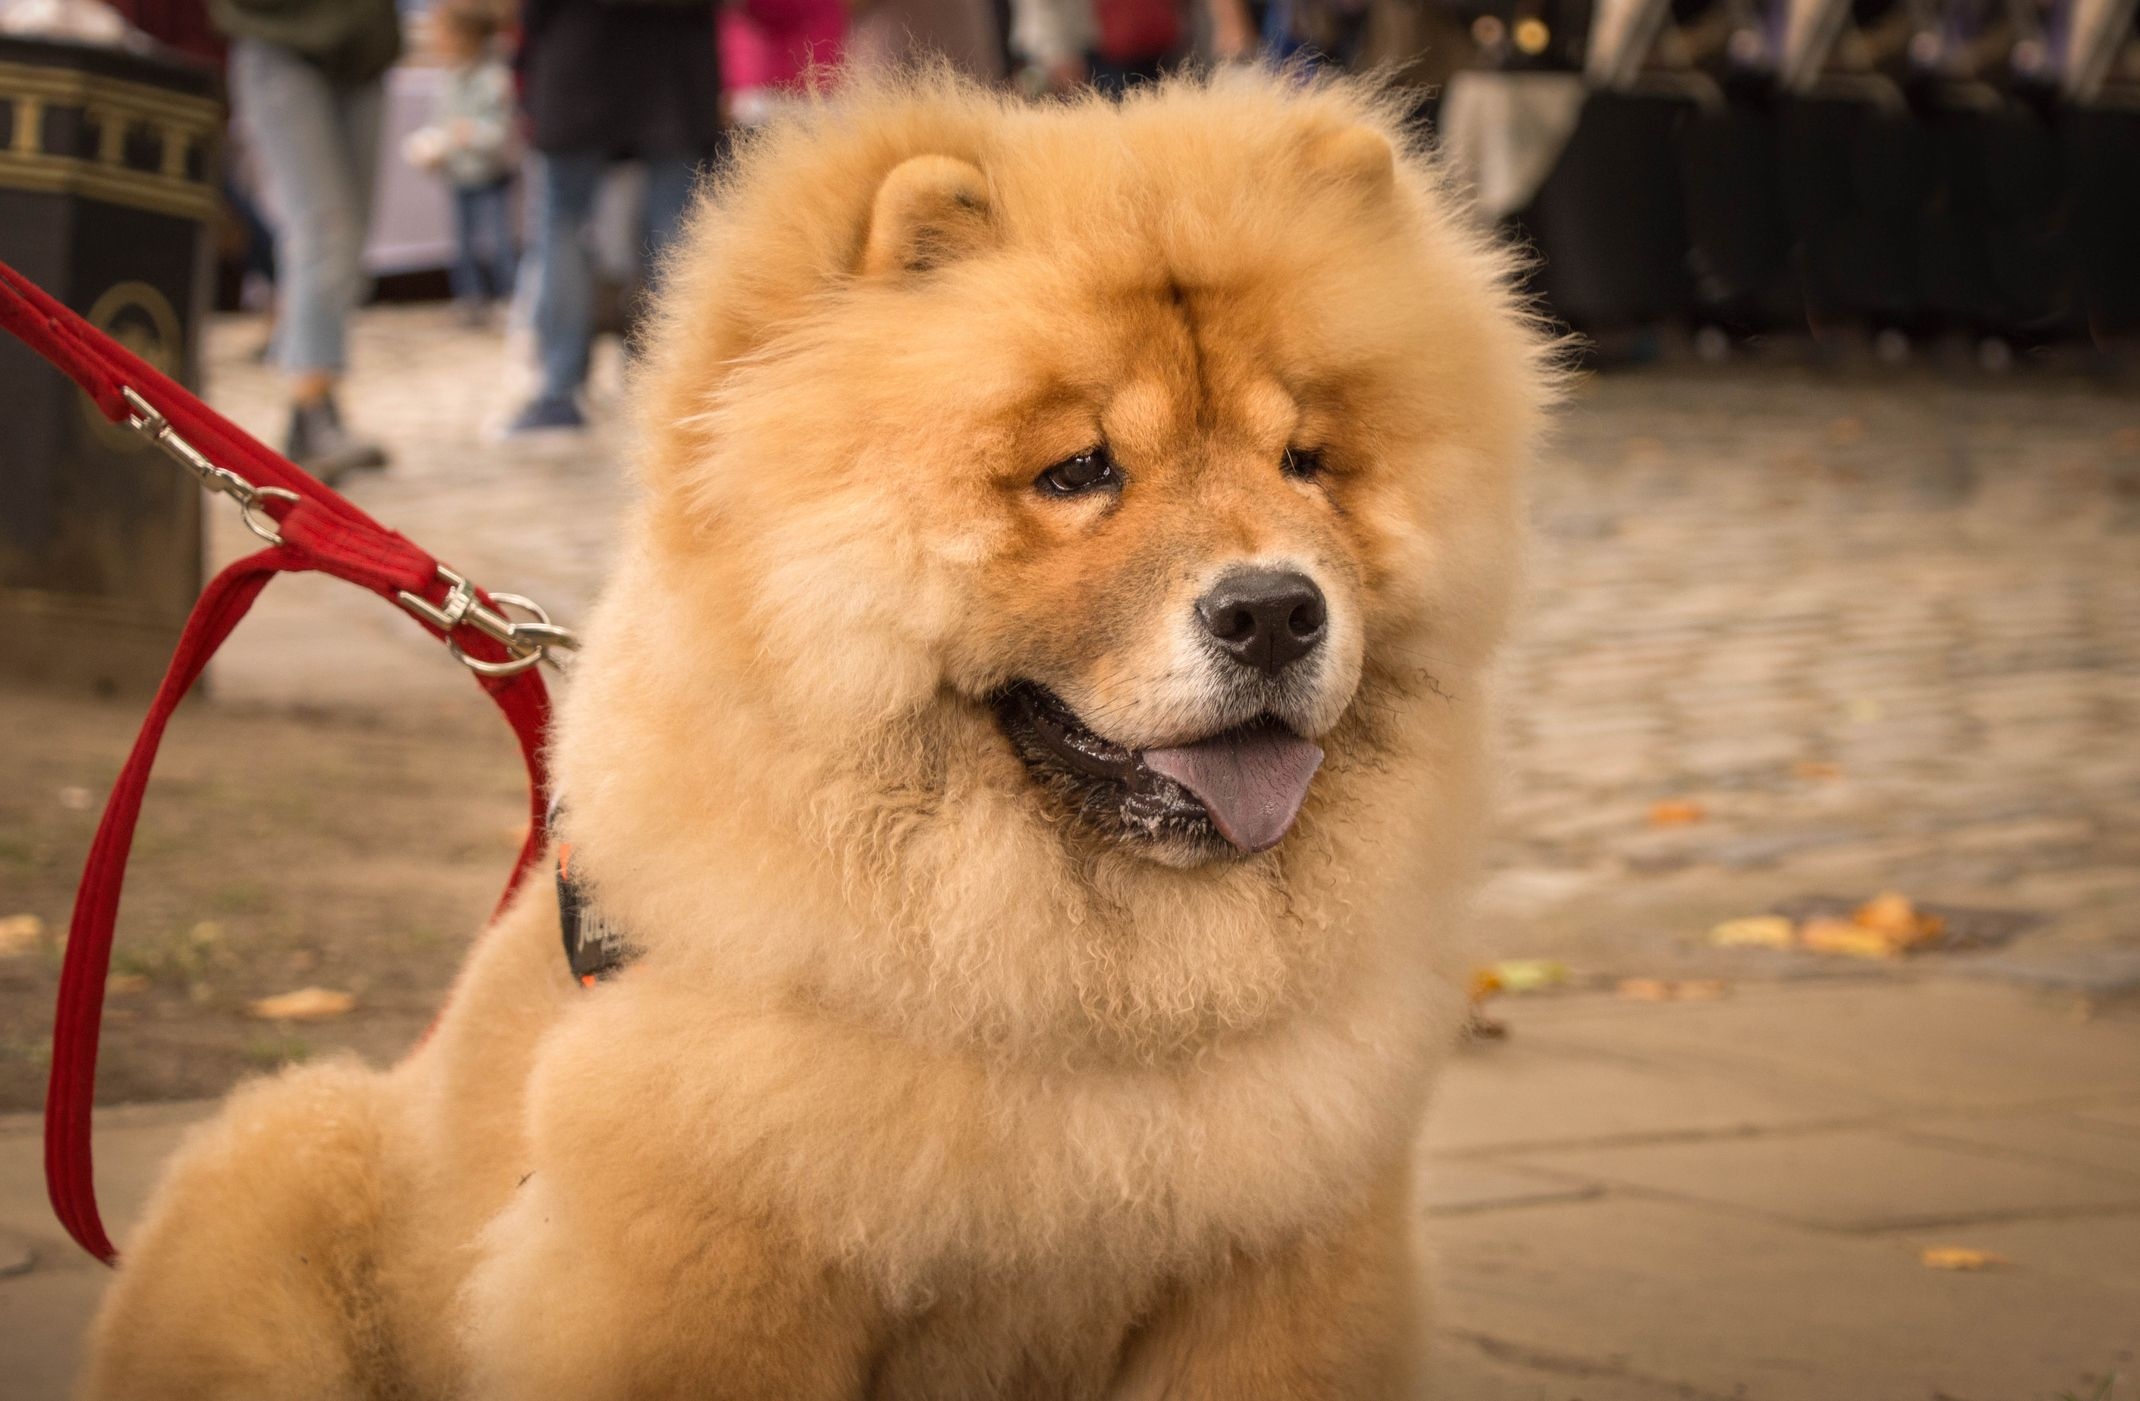 7 Dogs That Look Like Lions: Chow Chow